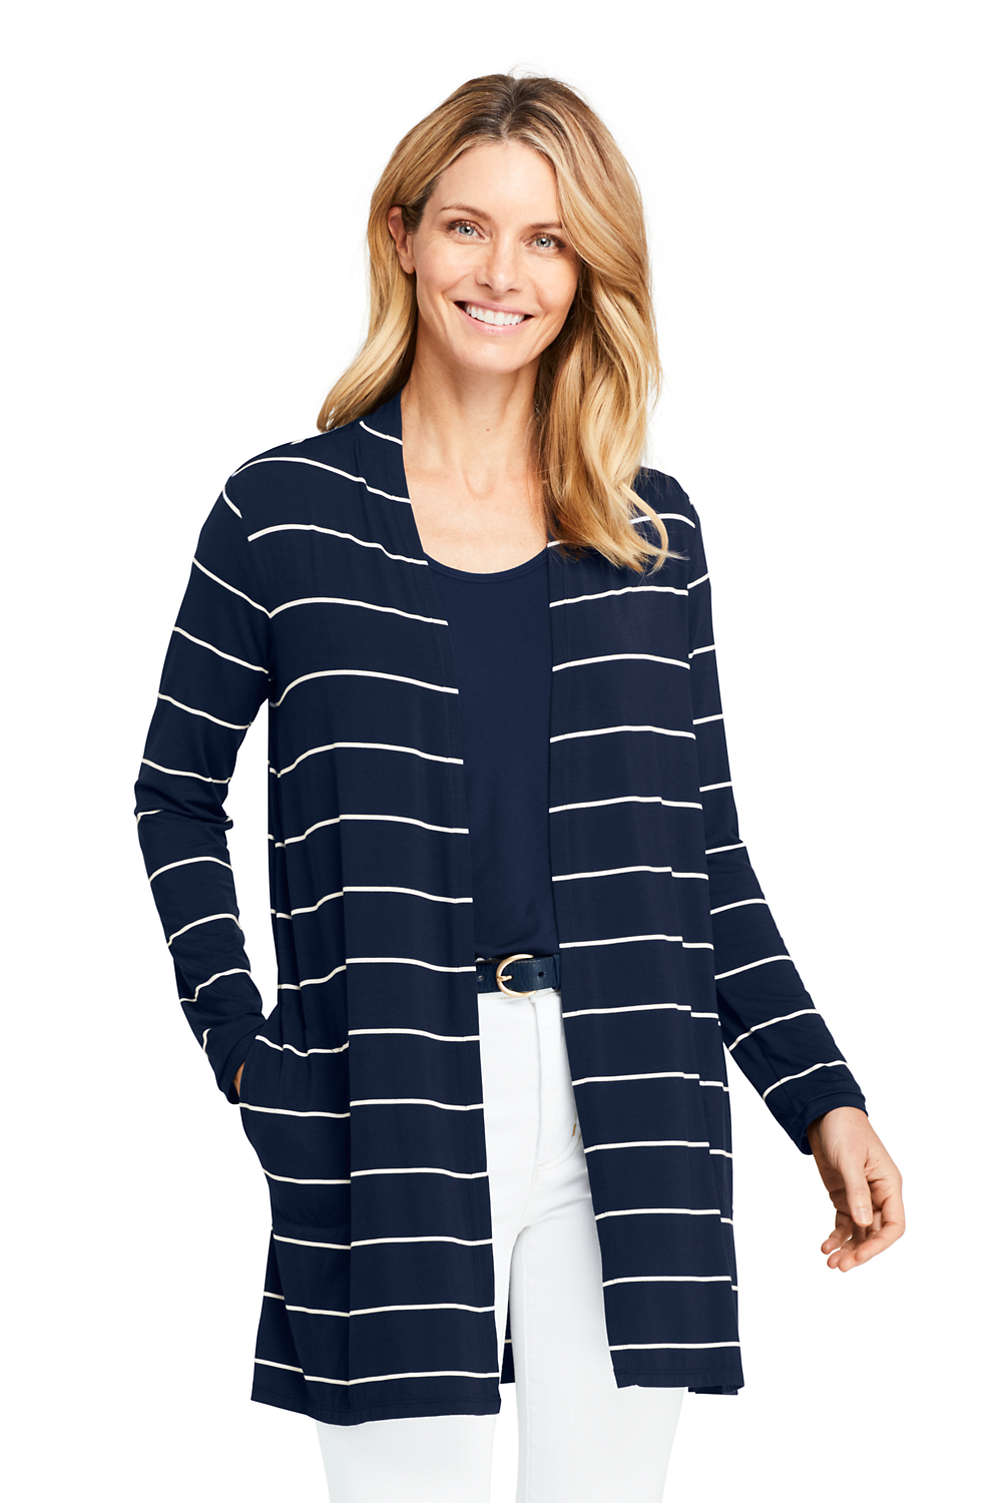 078e5933eea Women s Long Sleeve Stripe Knit Cardigan from Lands  End